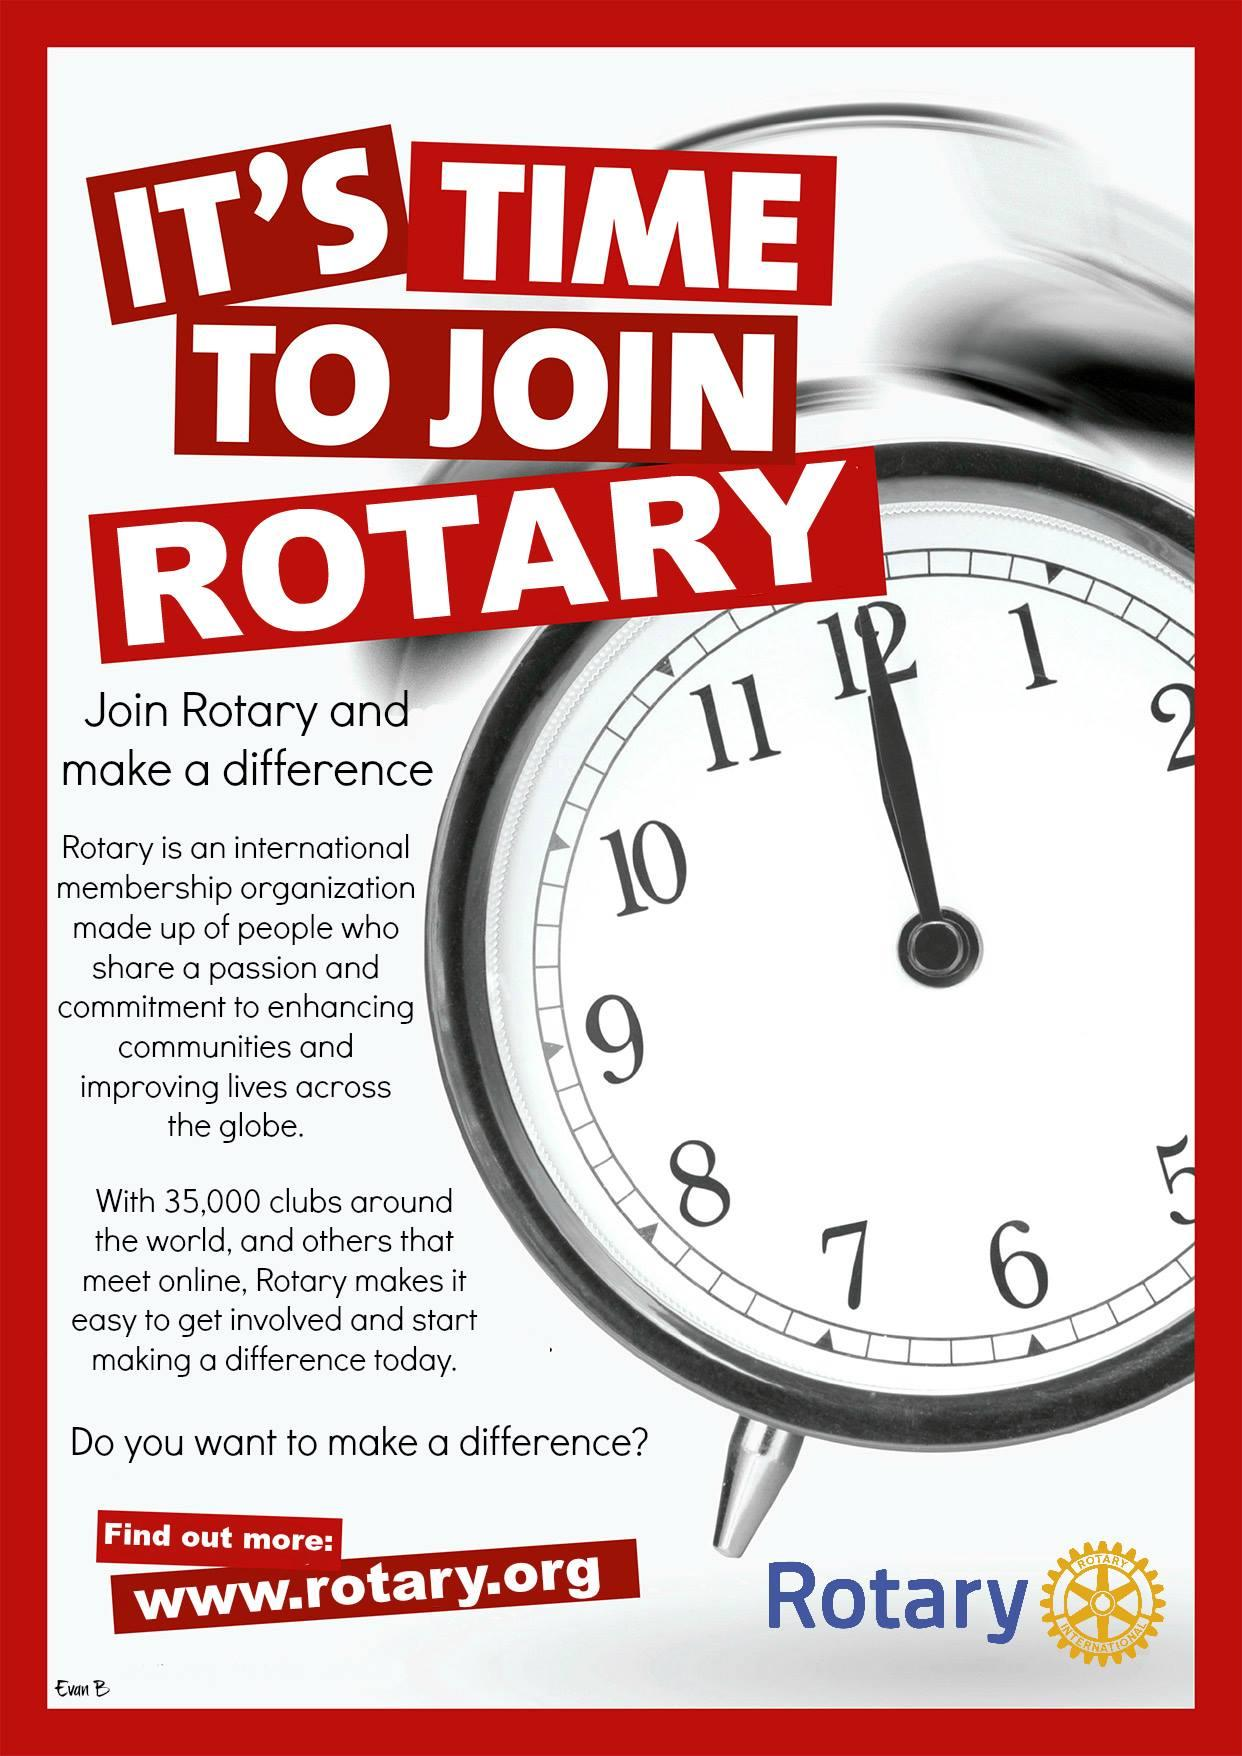 a98278ea7a5 Los Gatos Rotary Club would love to meet you and tell you more about Rotary  and how you can make a difference in our community and world by joining  Rotary.